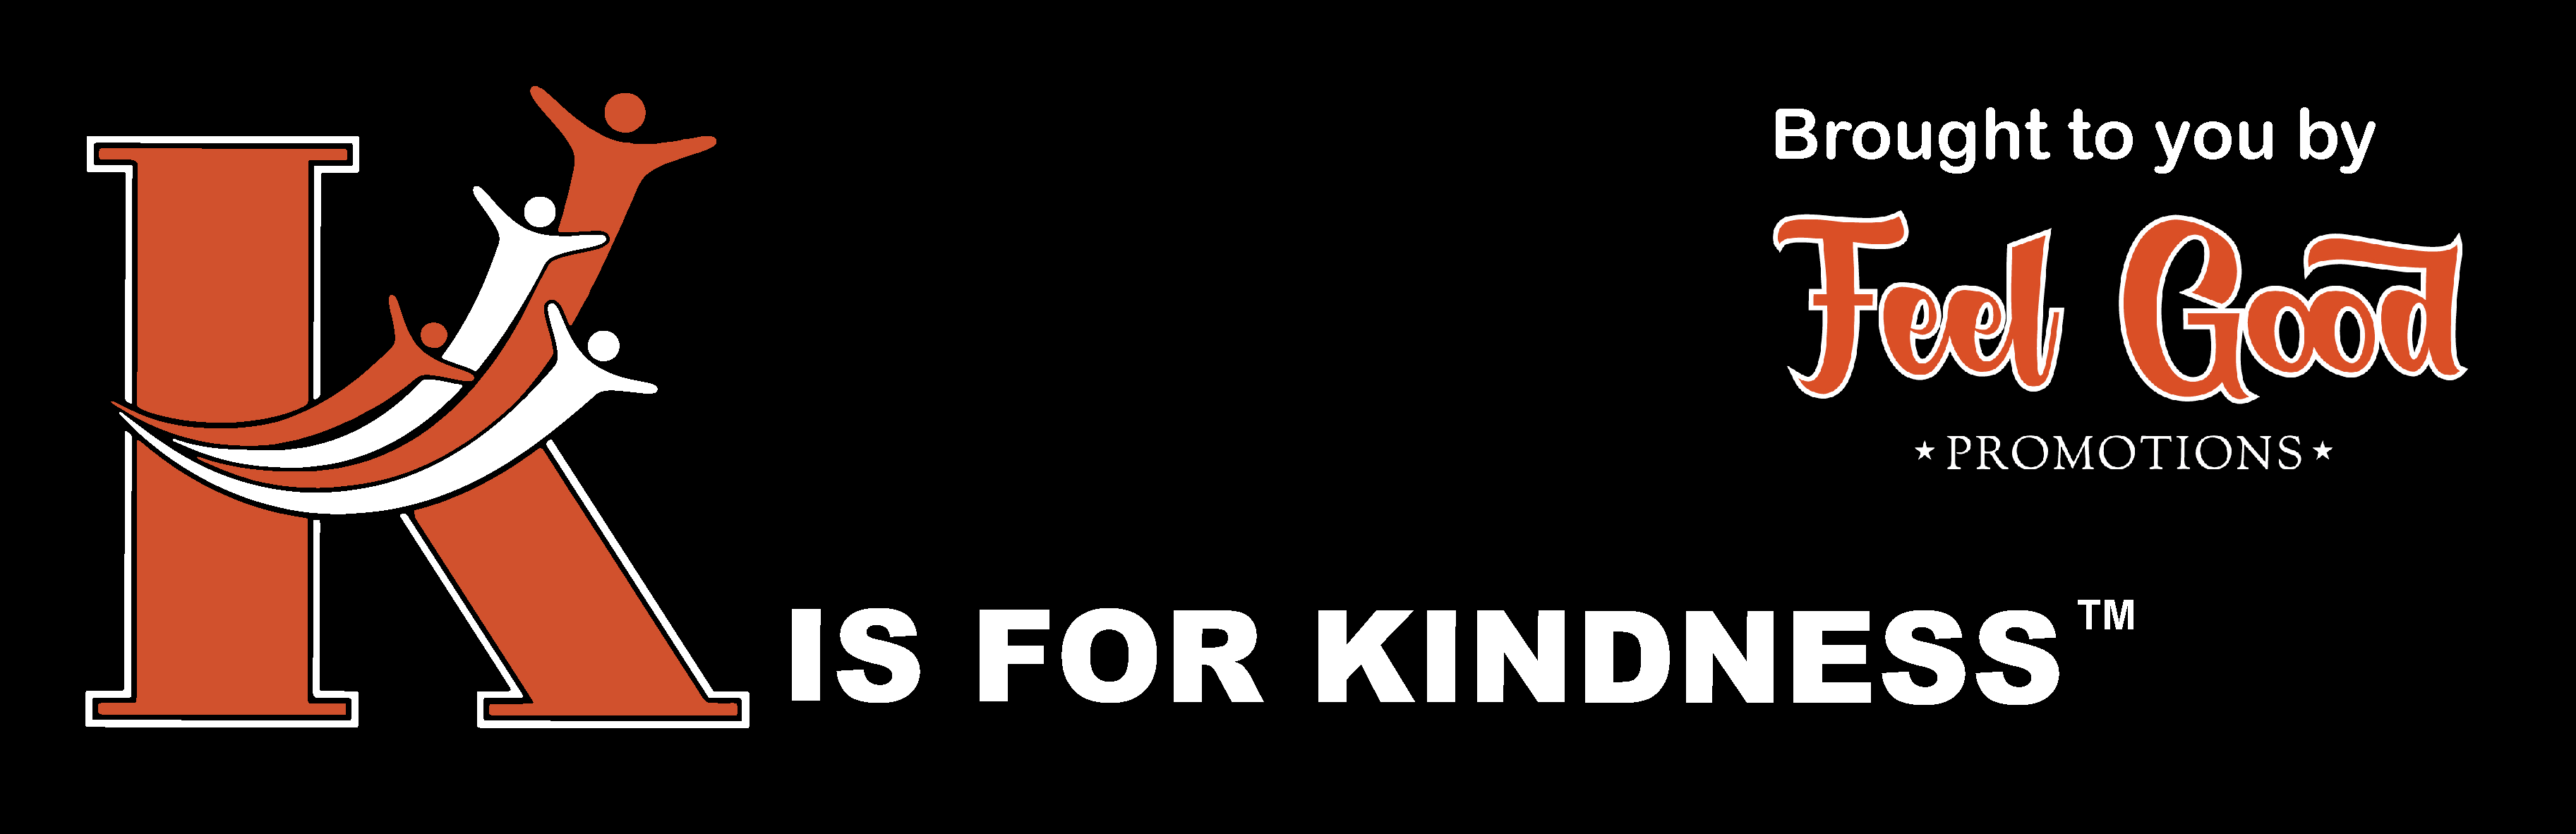 K is for Kindness™